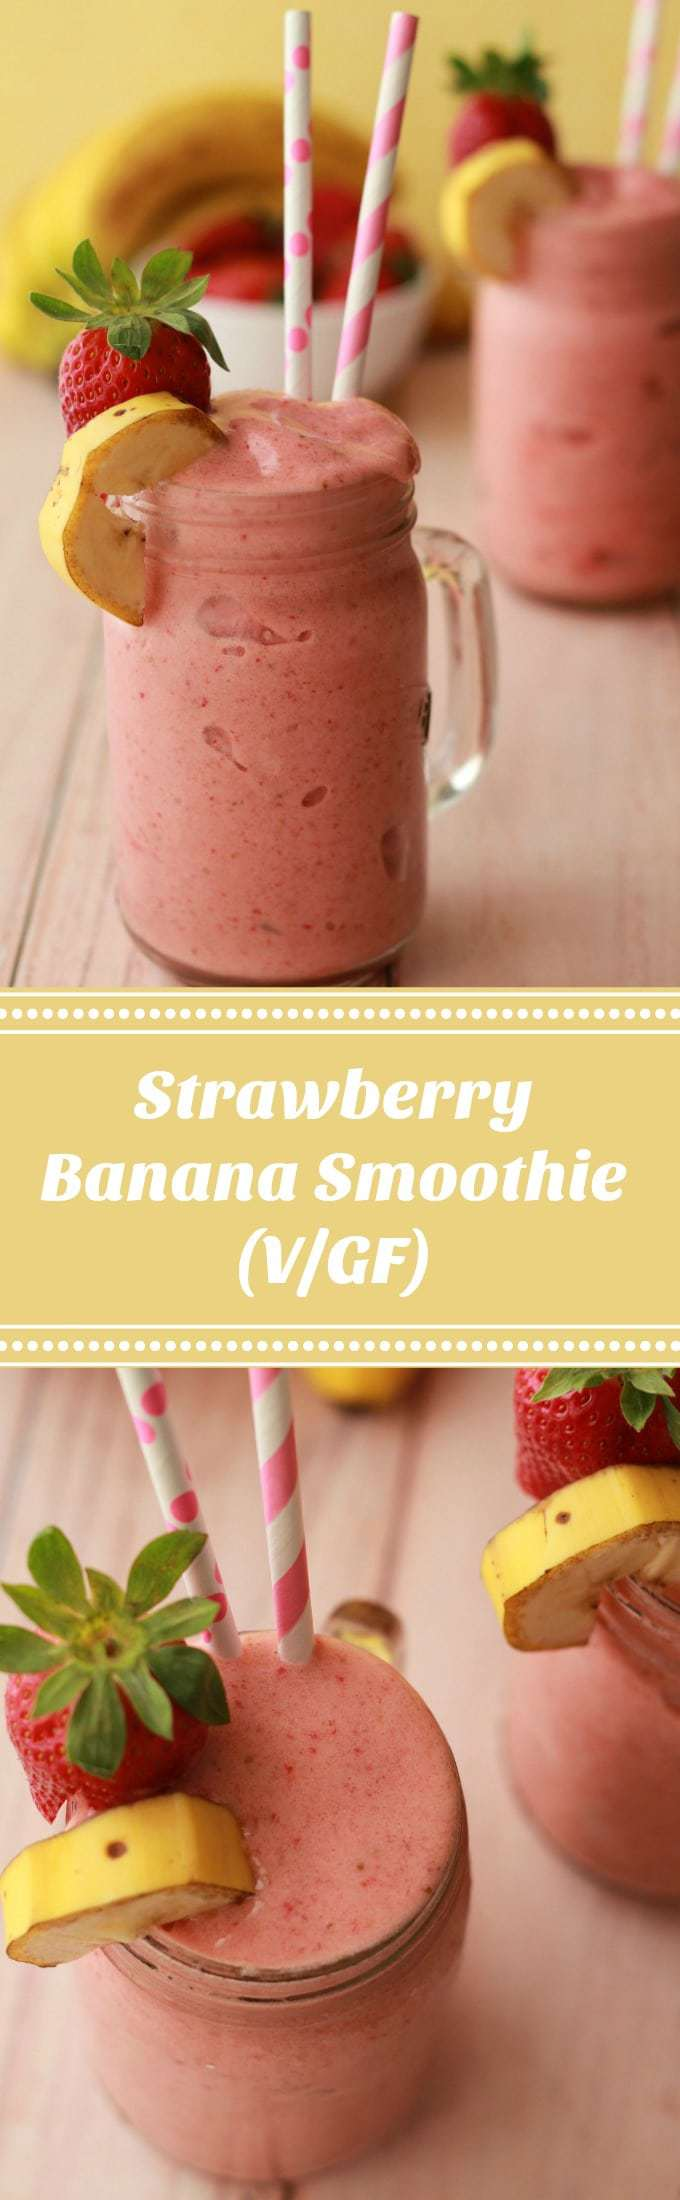 Strawberry Banana Smoothie #vegan #strawberrybanana #smoothies #glutenfree #dairyfree